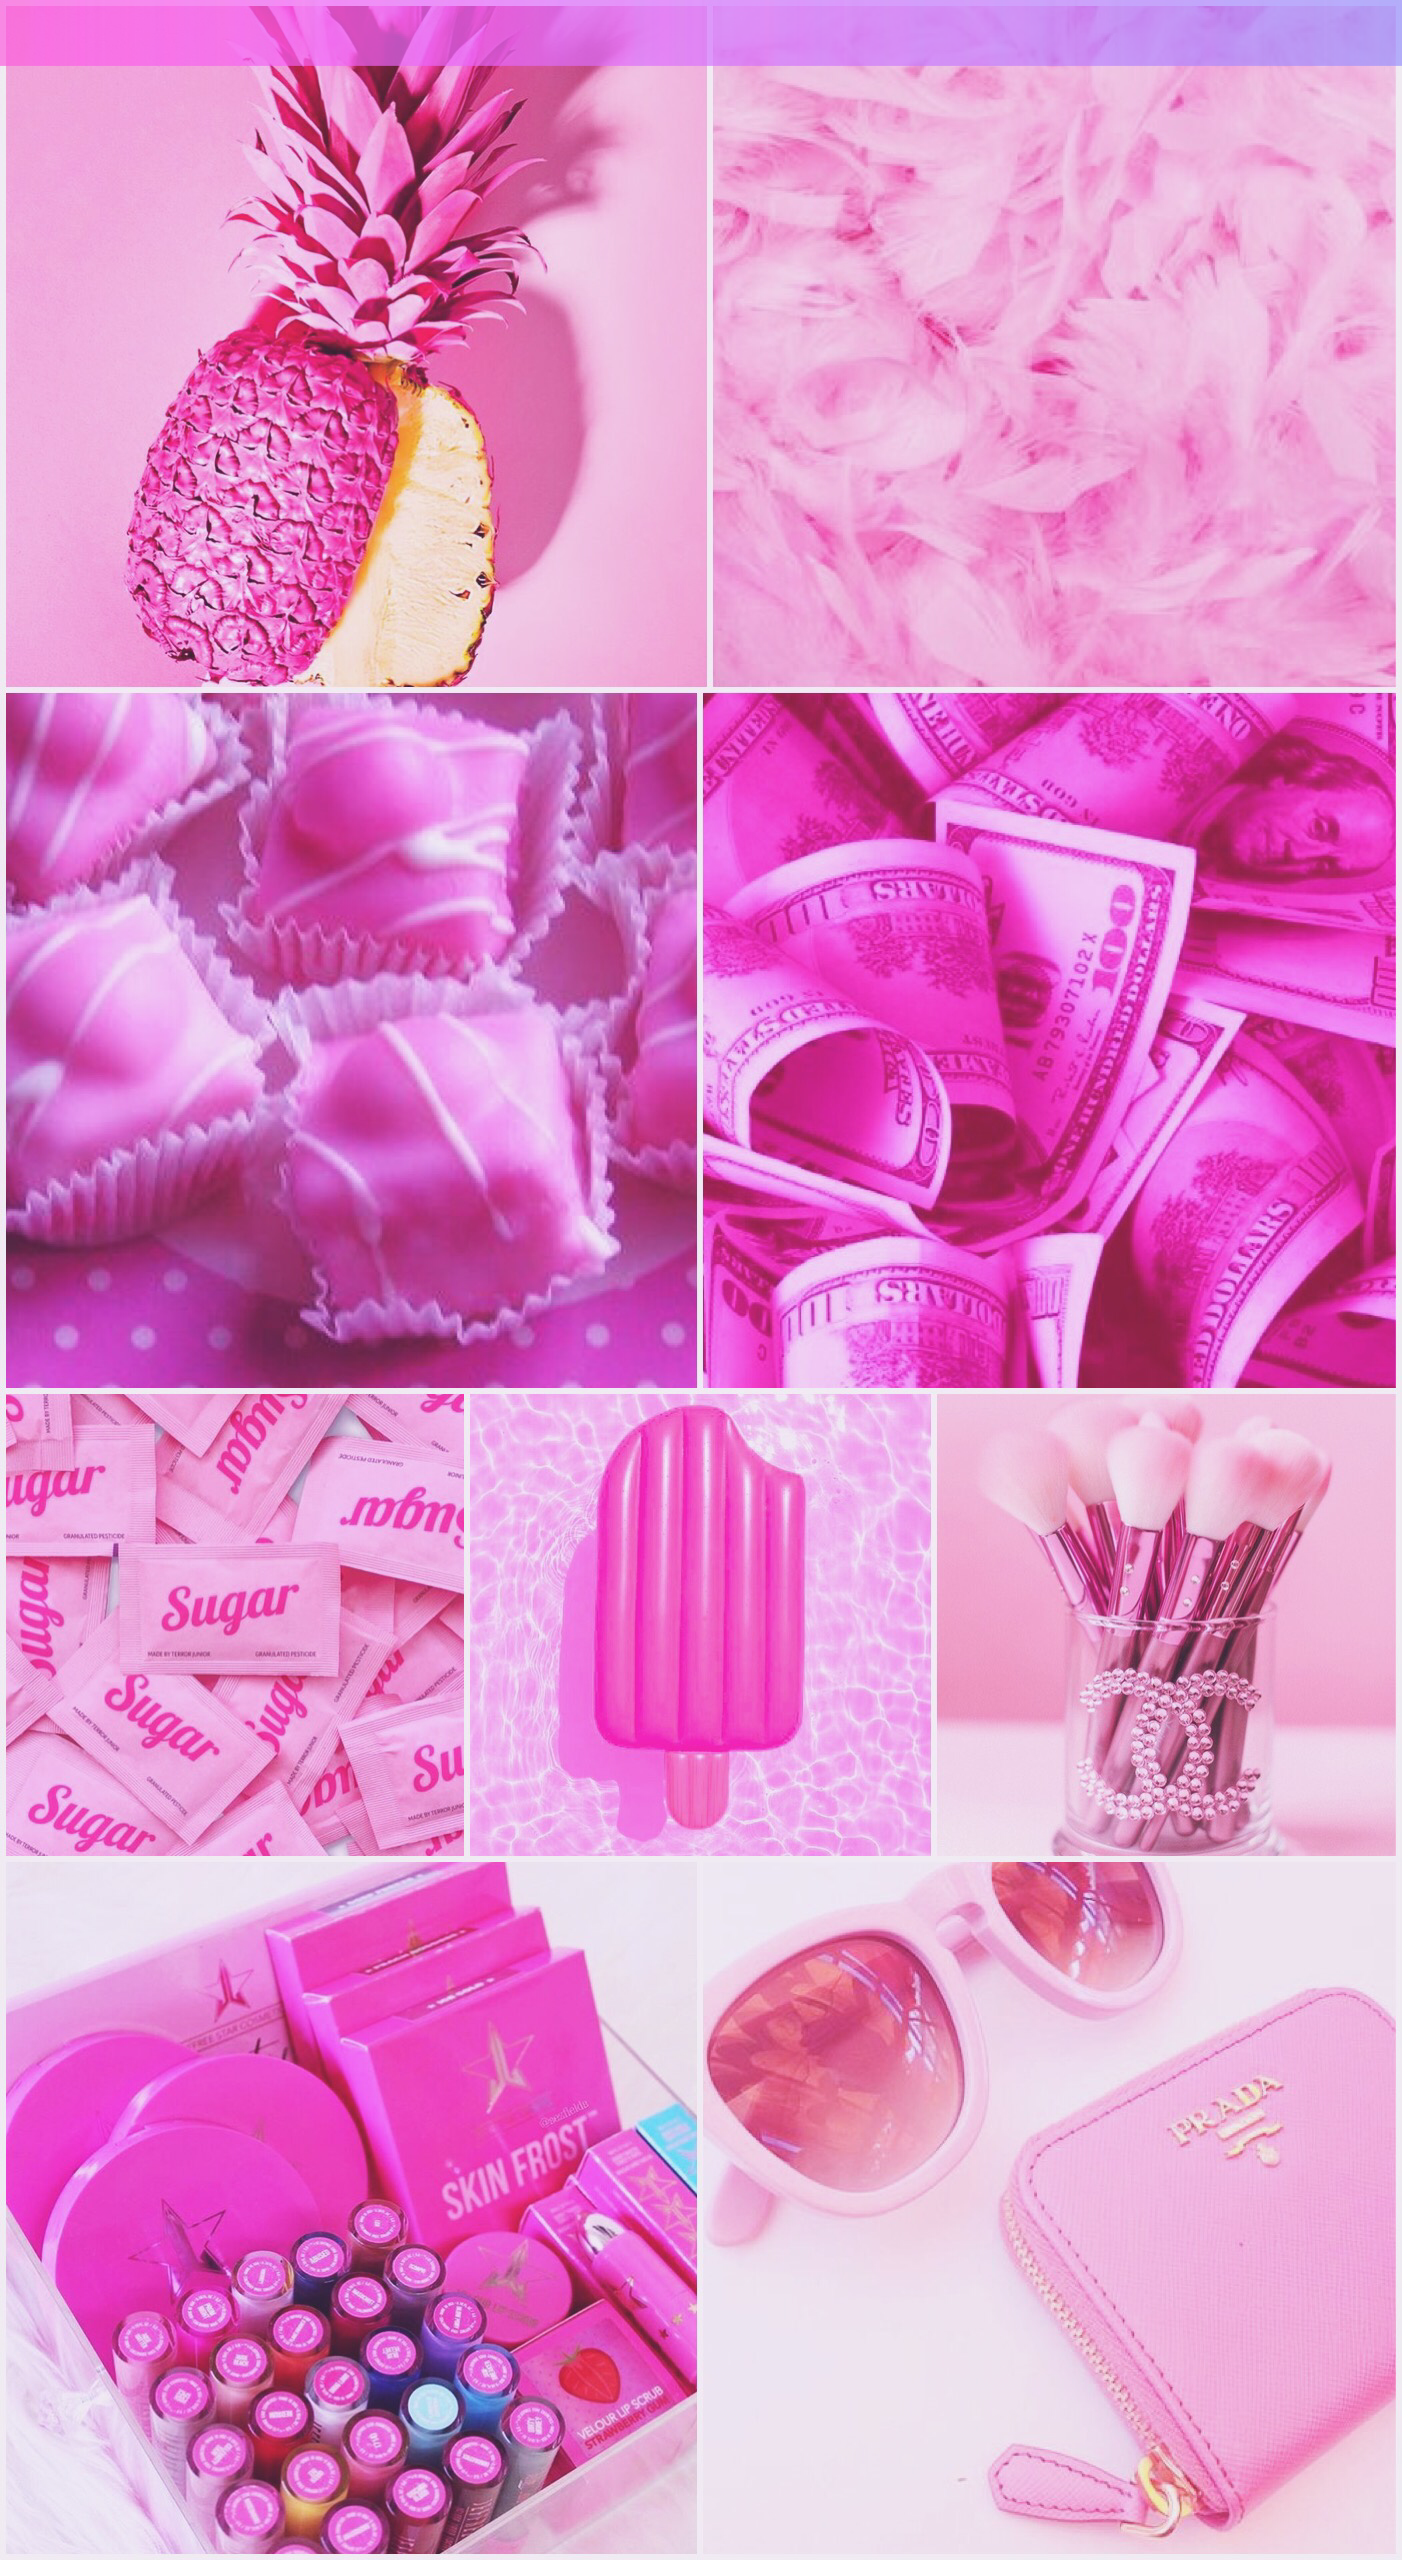 wallpaper background collage iphone android pink girly summer